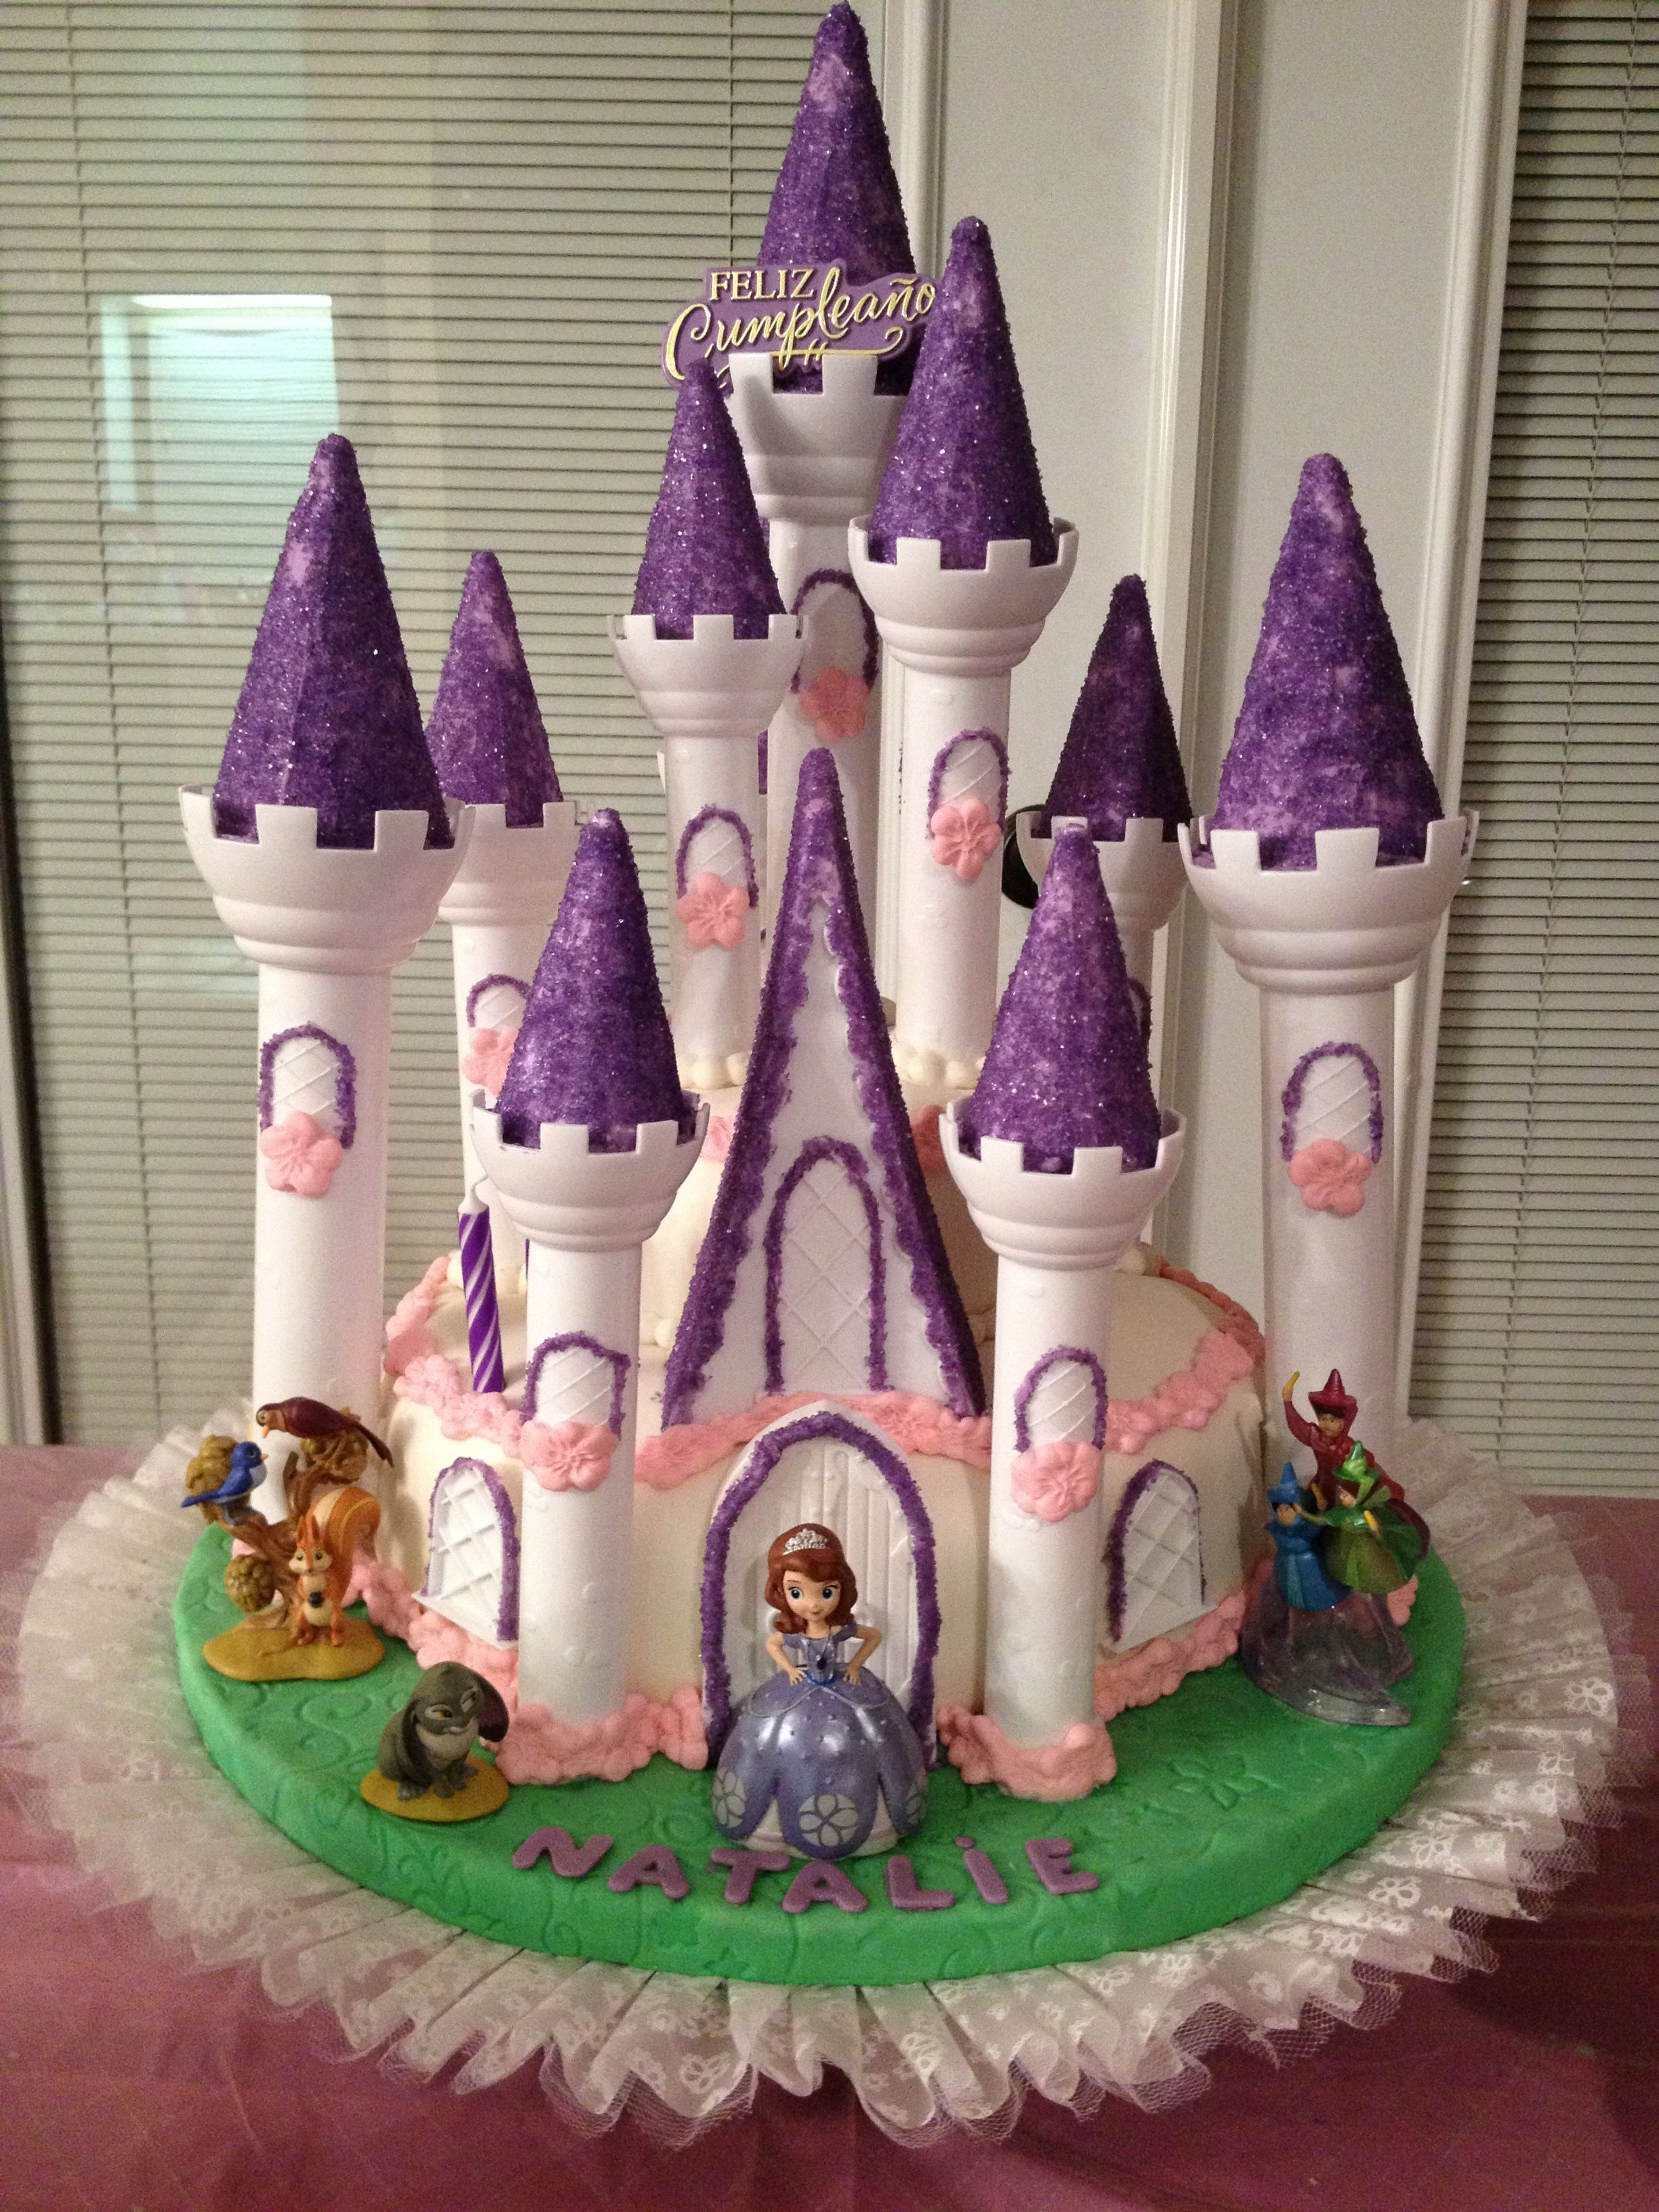 Sofia The First Castle Cake I Made For My Daughter S 2nd Birthday